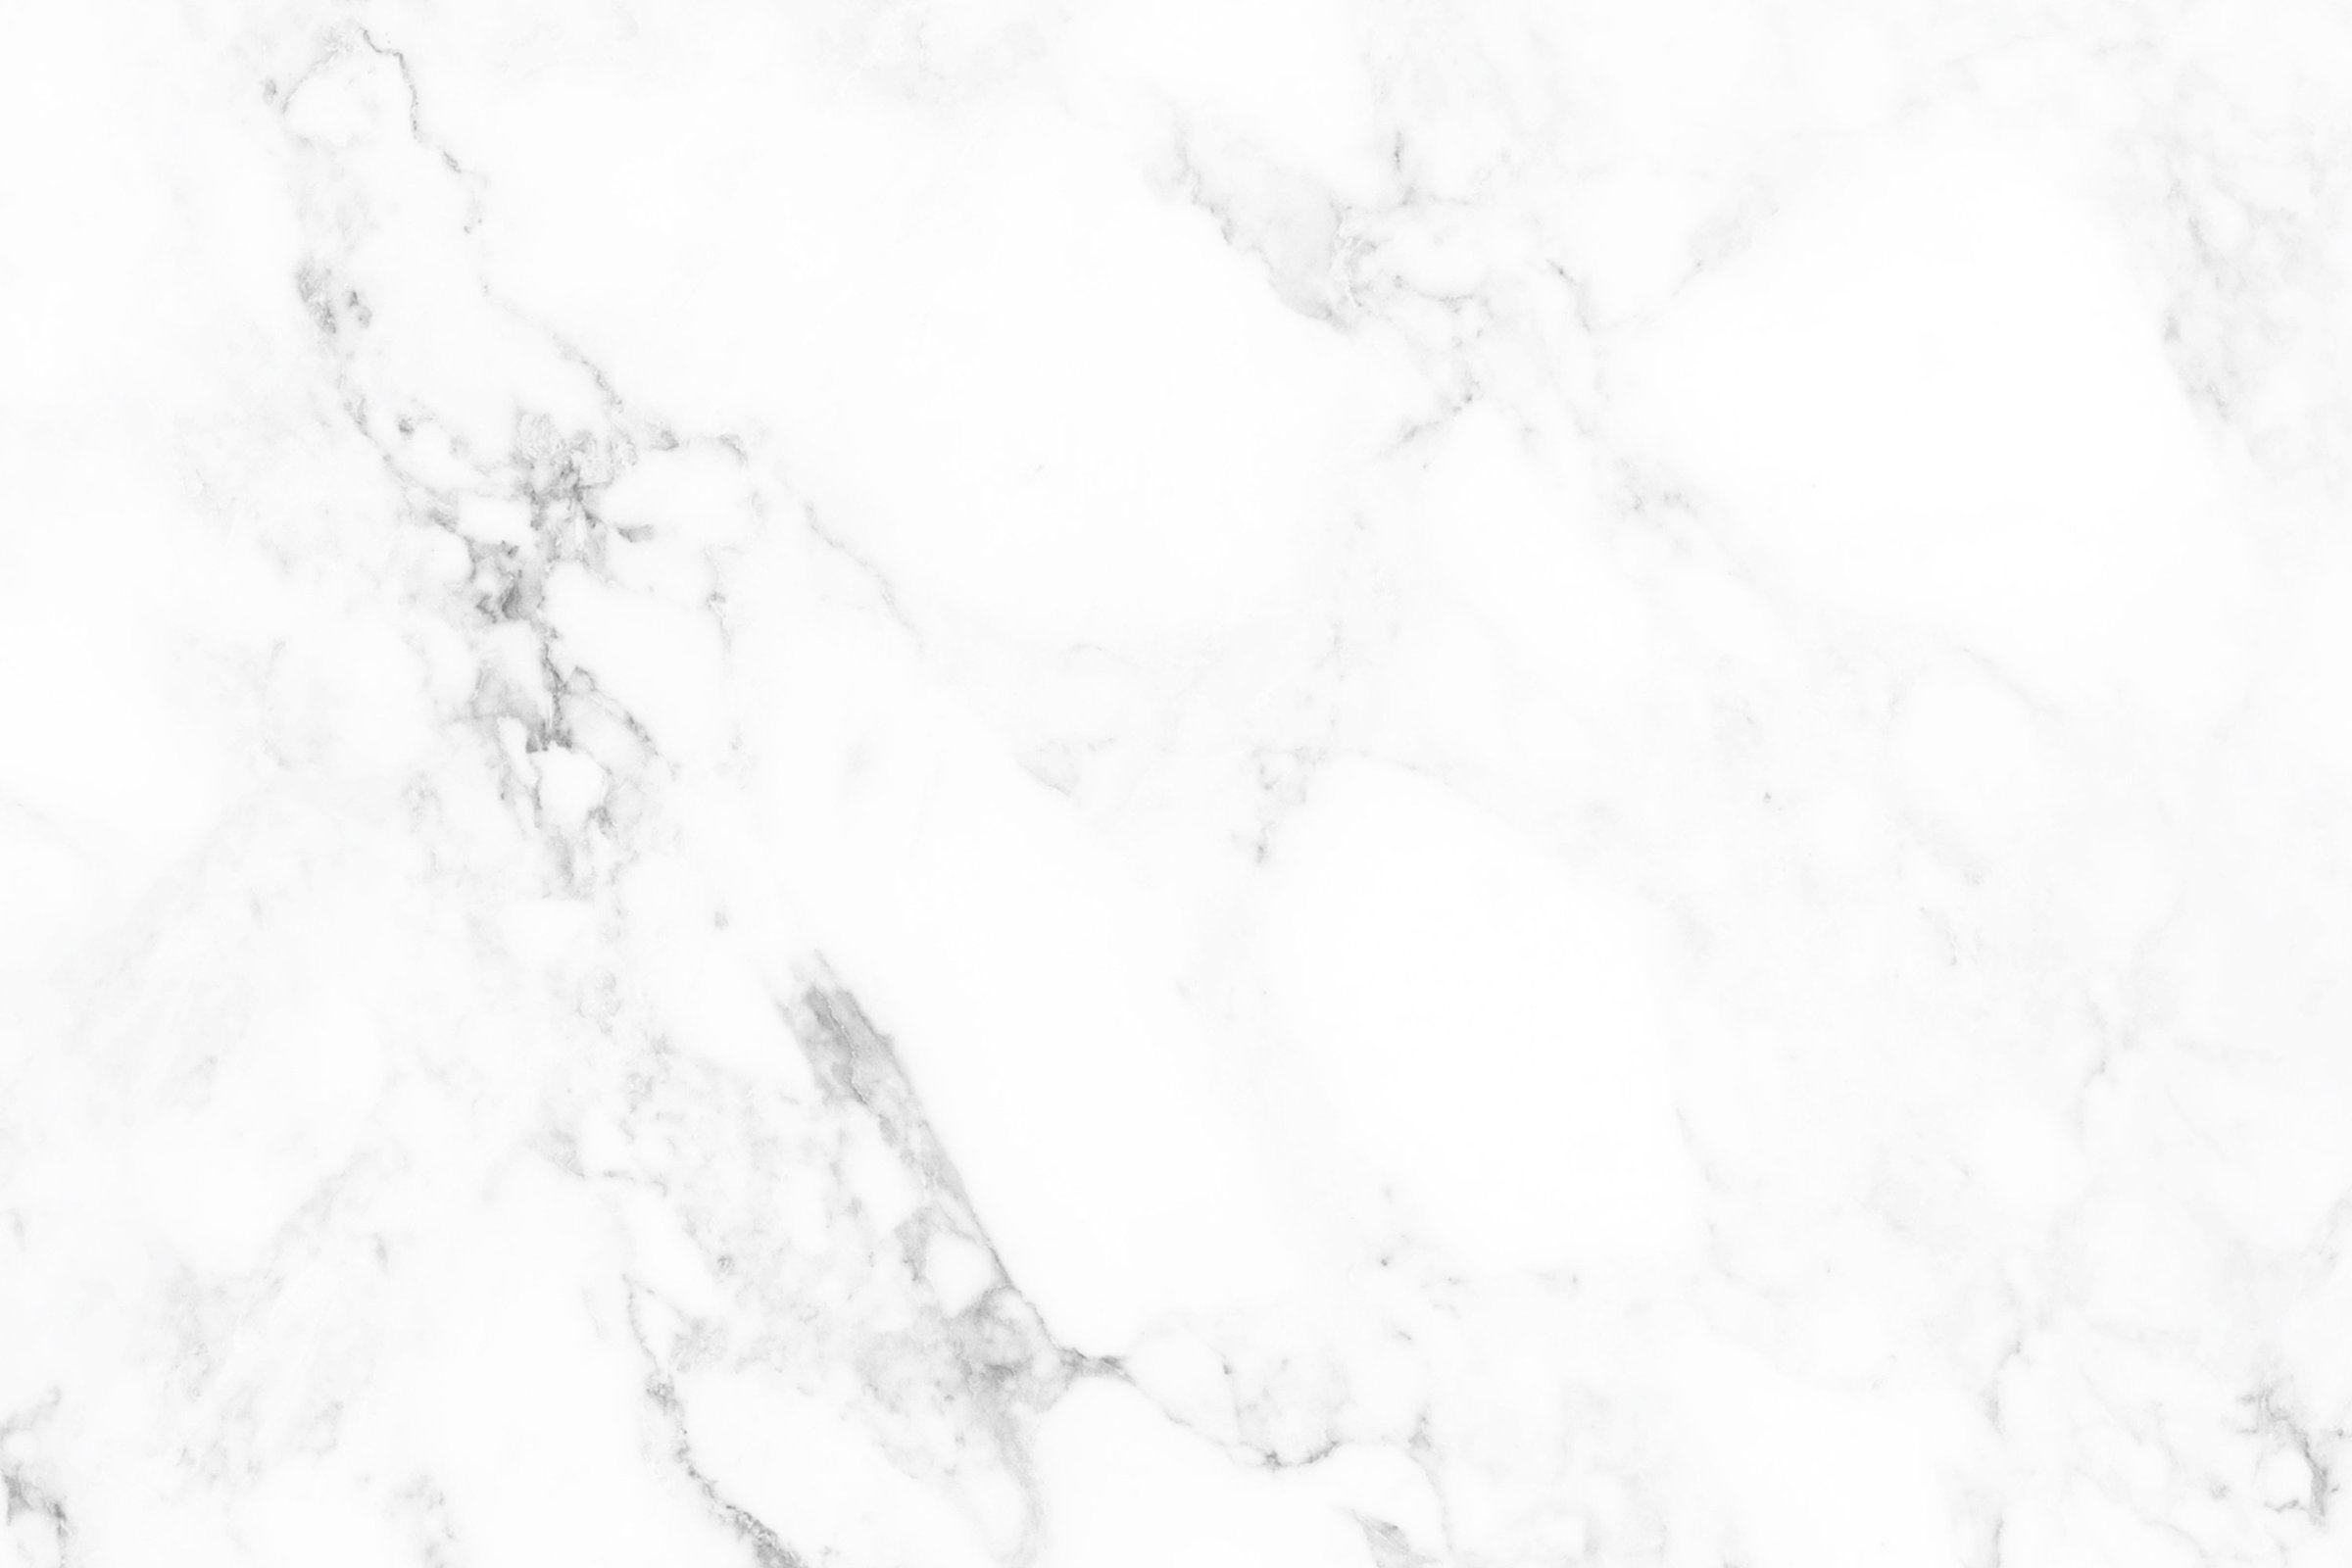 MM_Background_Marble